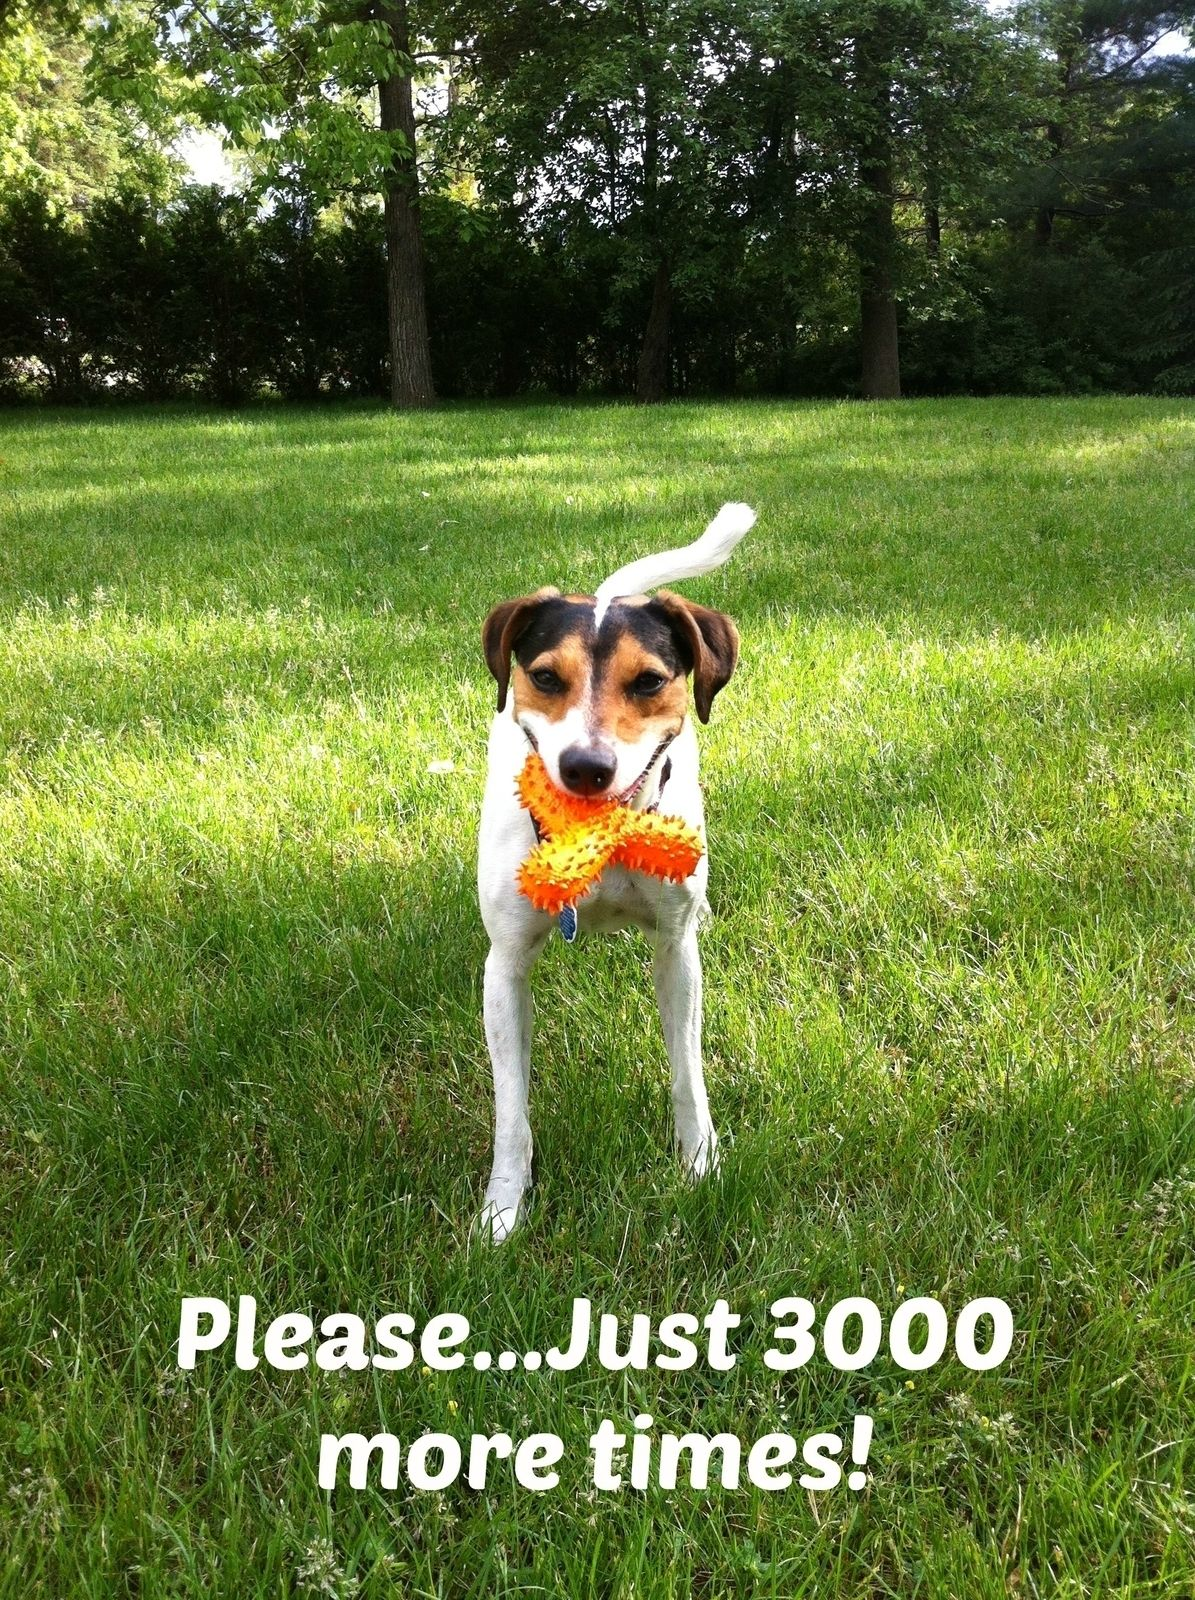 Just 3000 more times!   #dogs #canine #pets #quotes #animals  #radiopet #dogfencing  Created by:  www.radiopet.ca